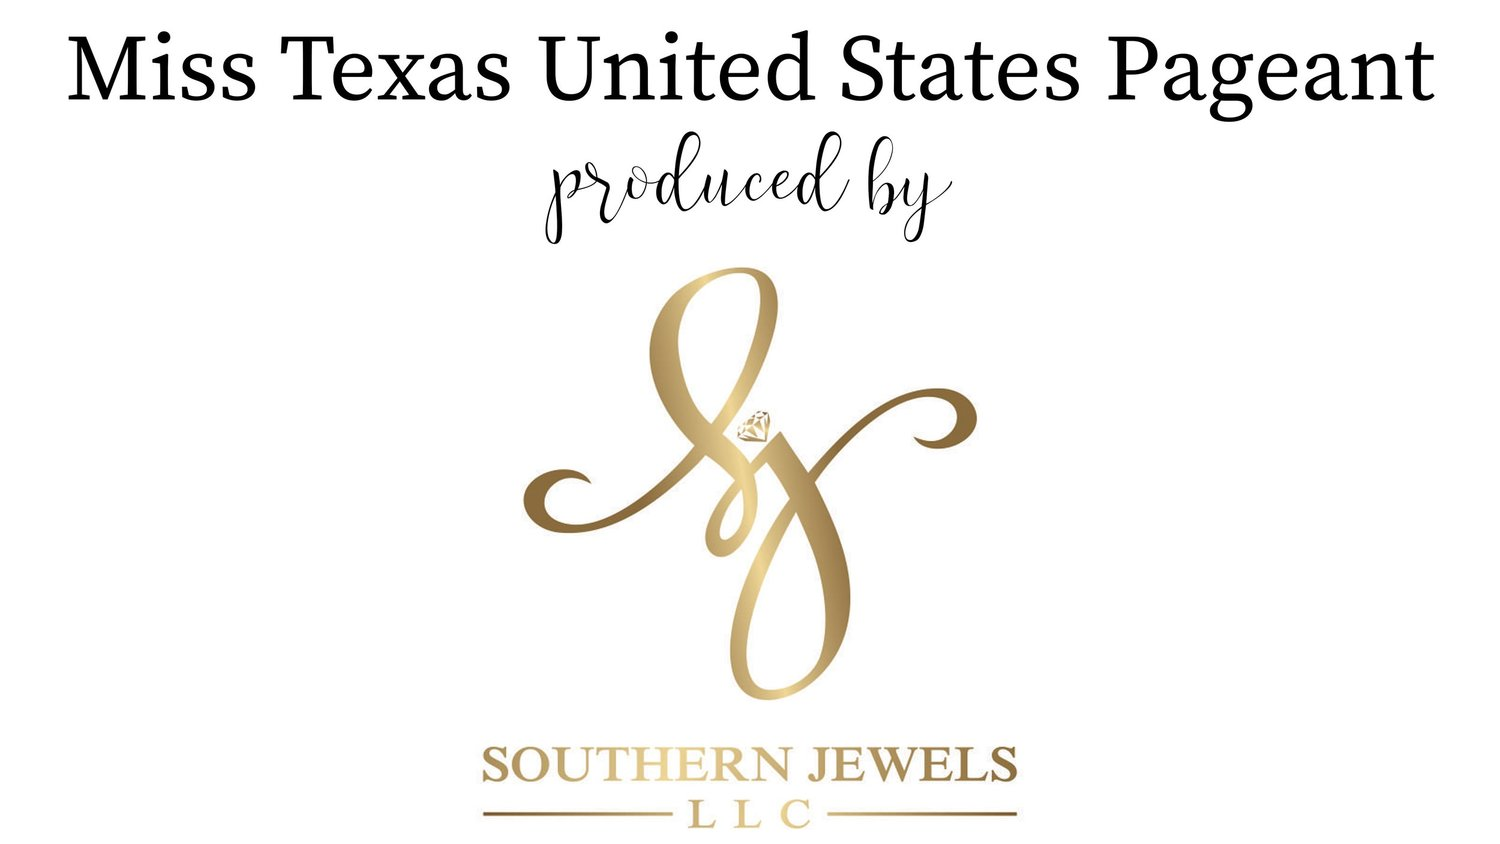 Miss Texas United States Pageant